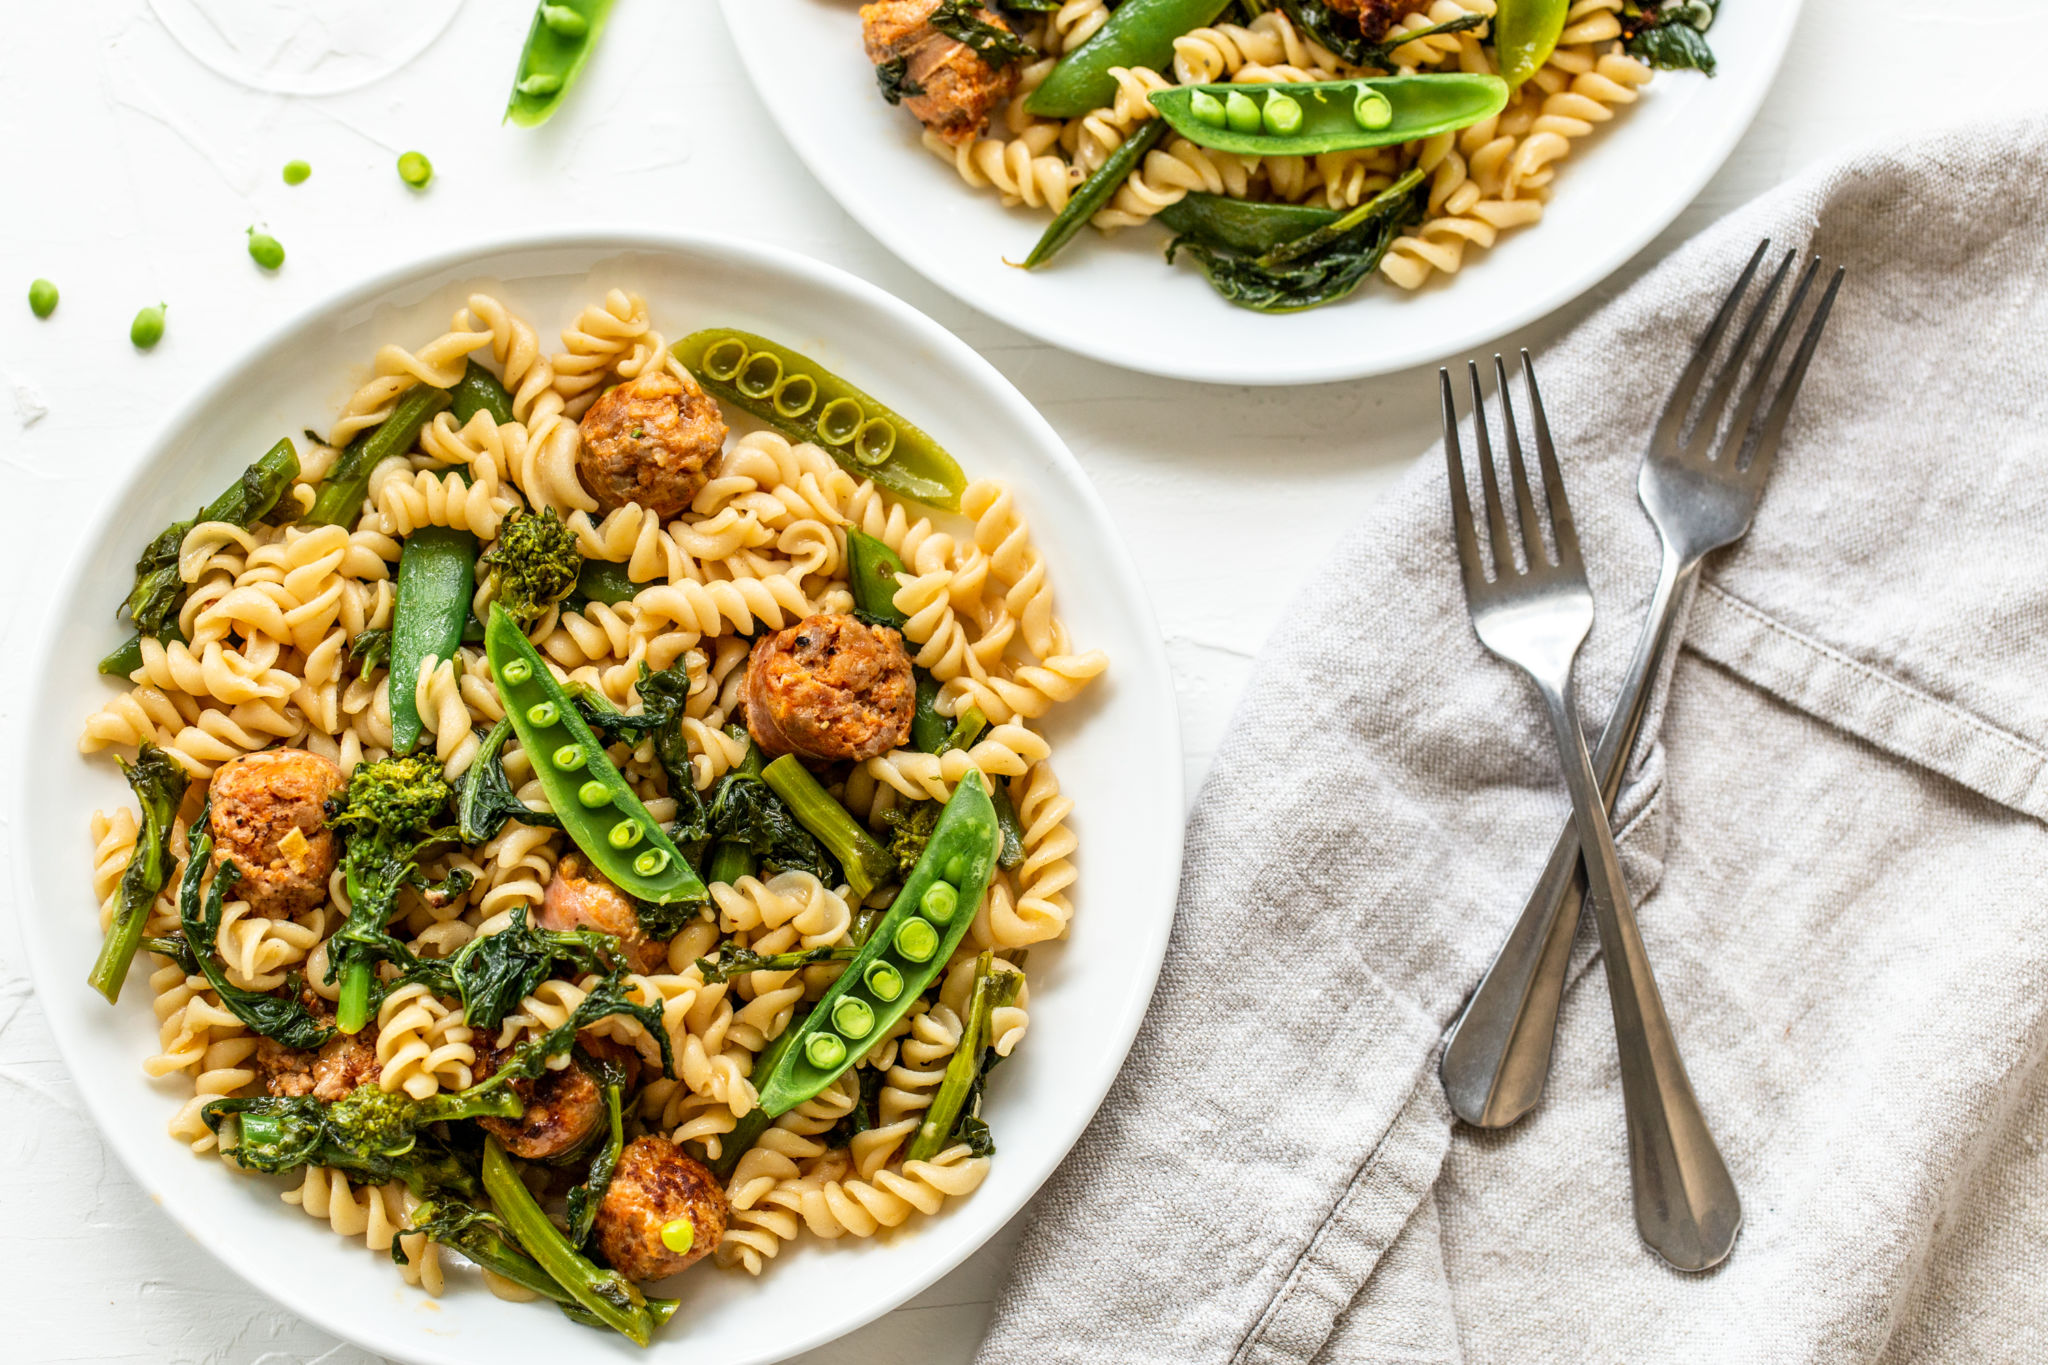 Gluten Free Rotini with Sausage and Broccoli Rabe in a White Wine Sauce